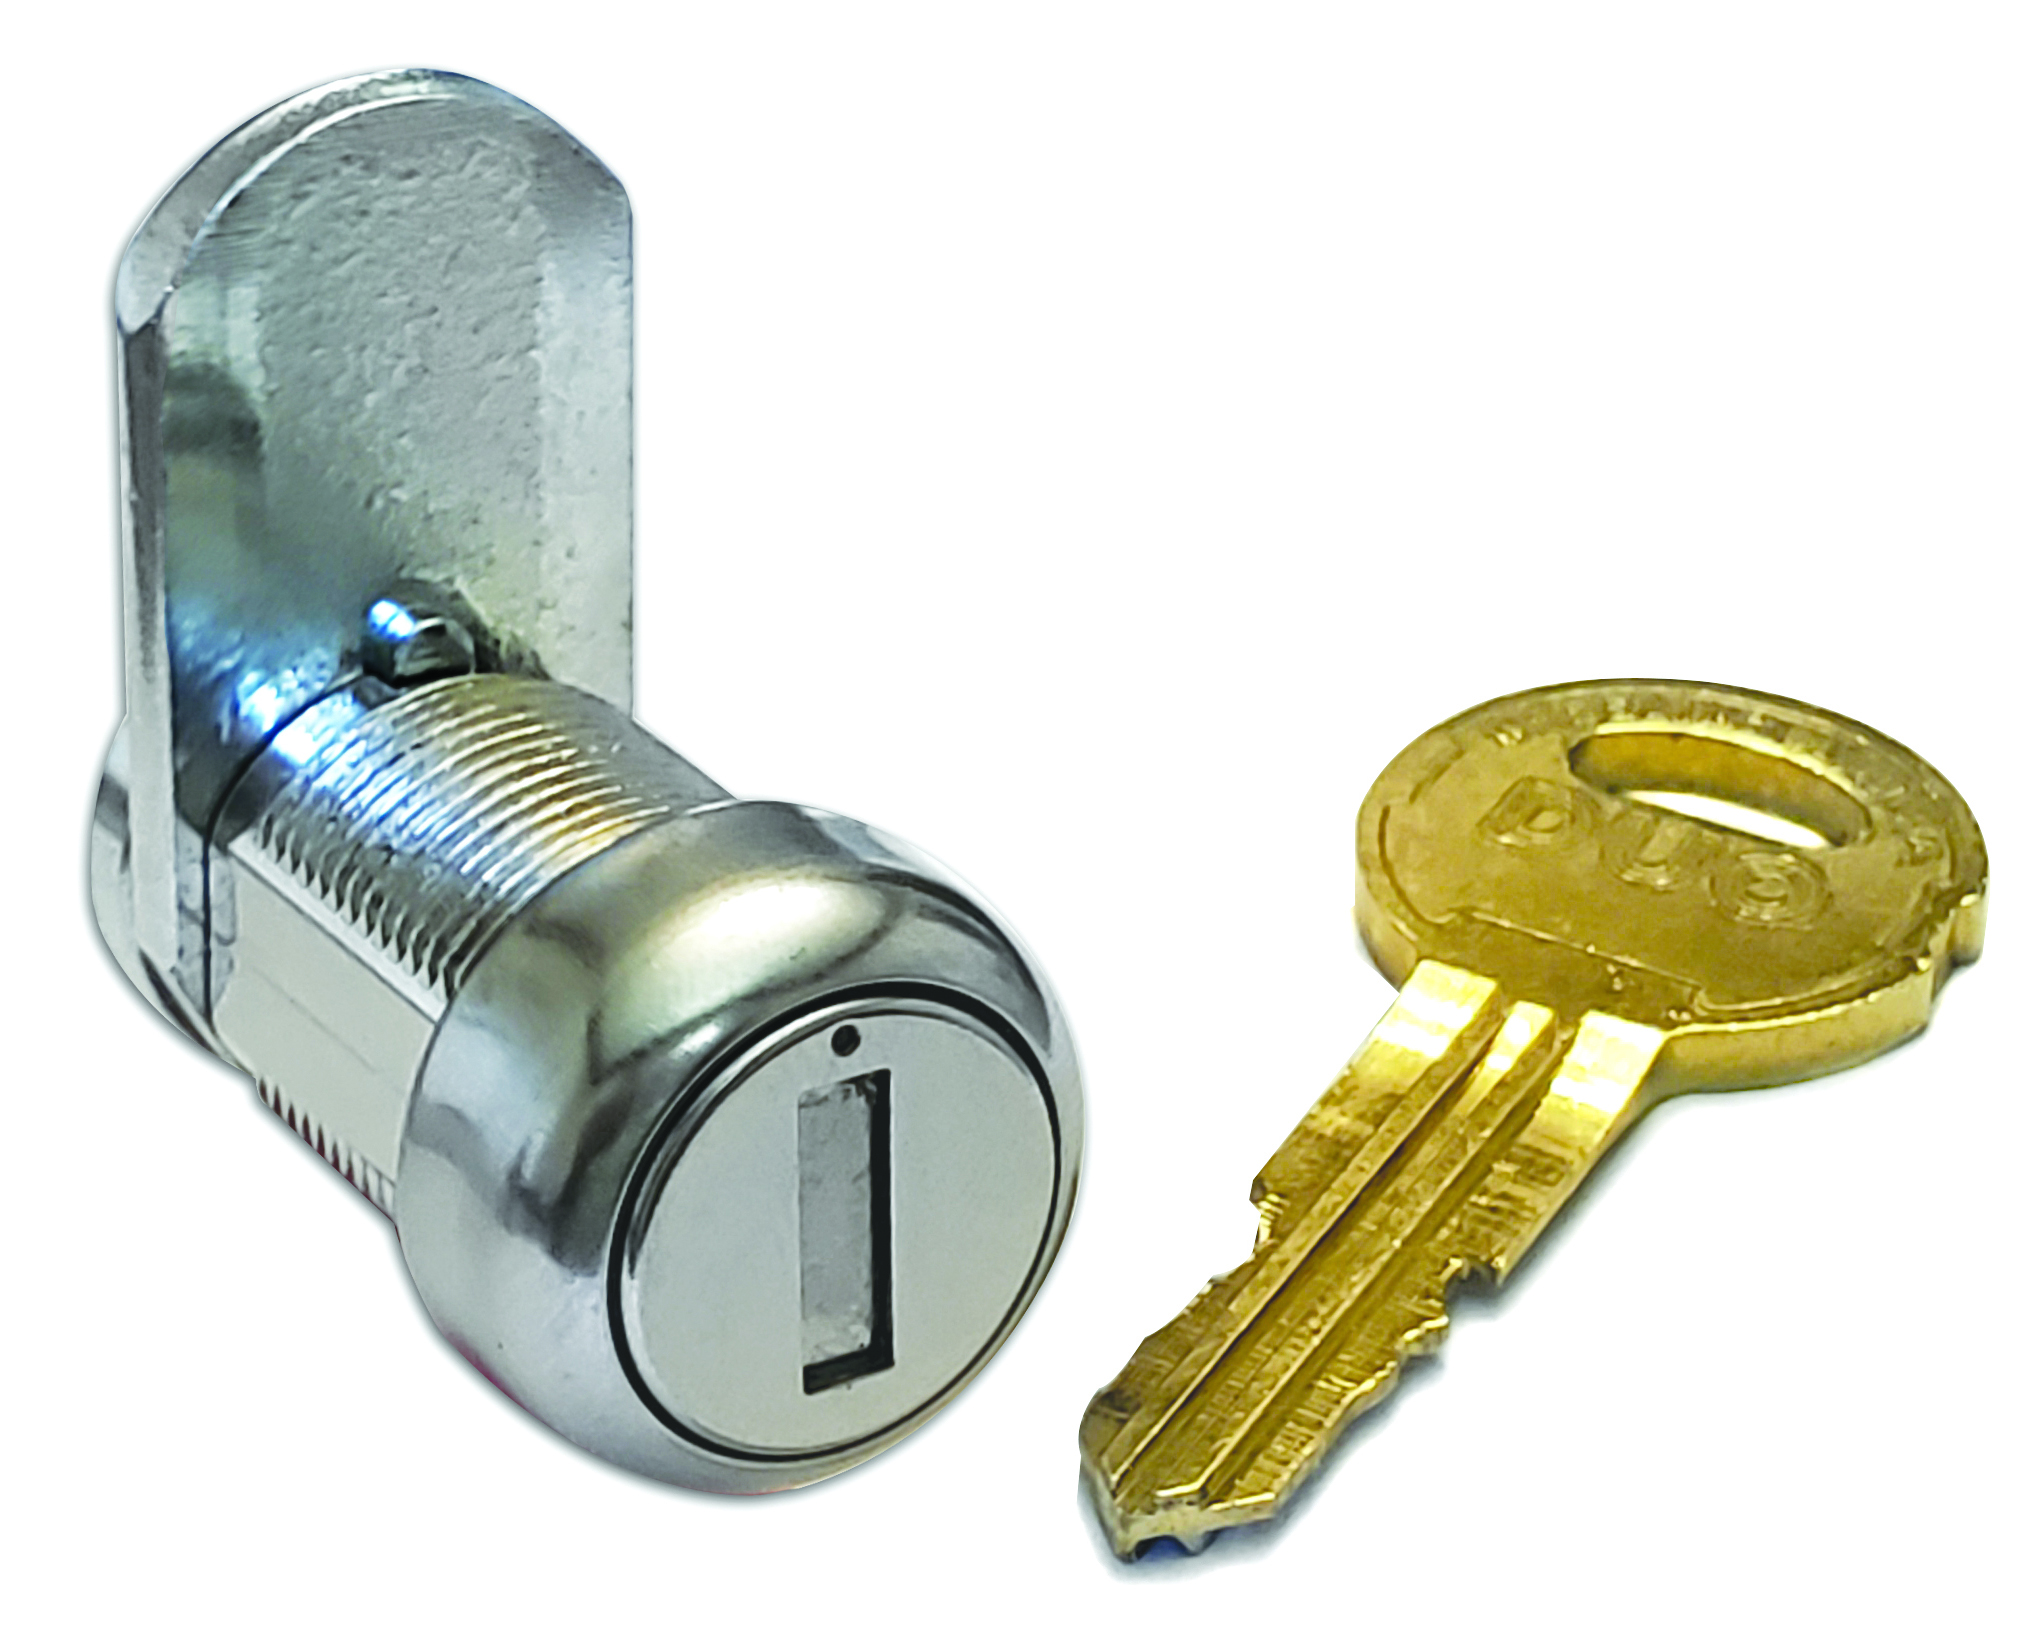 IP66 Rated, 643 Duo Series, weather resistant cam lock 64360